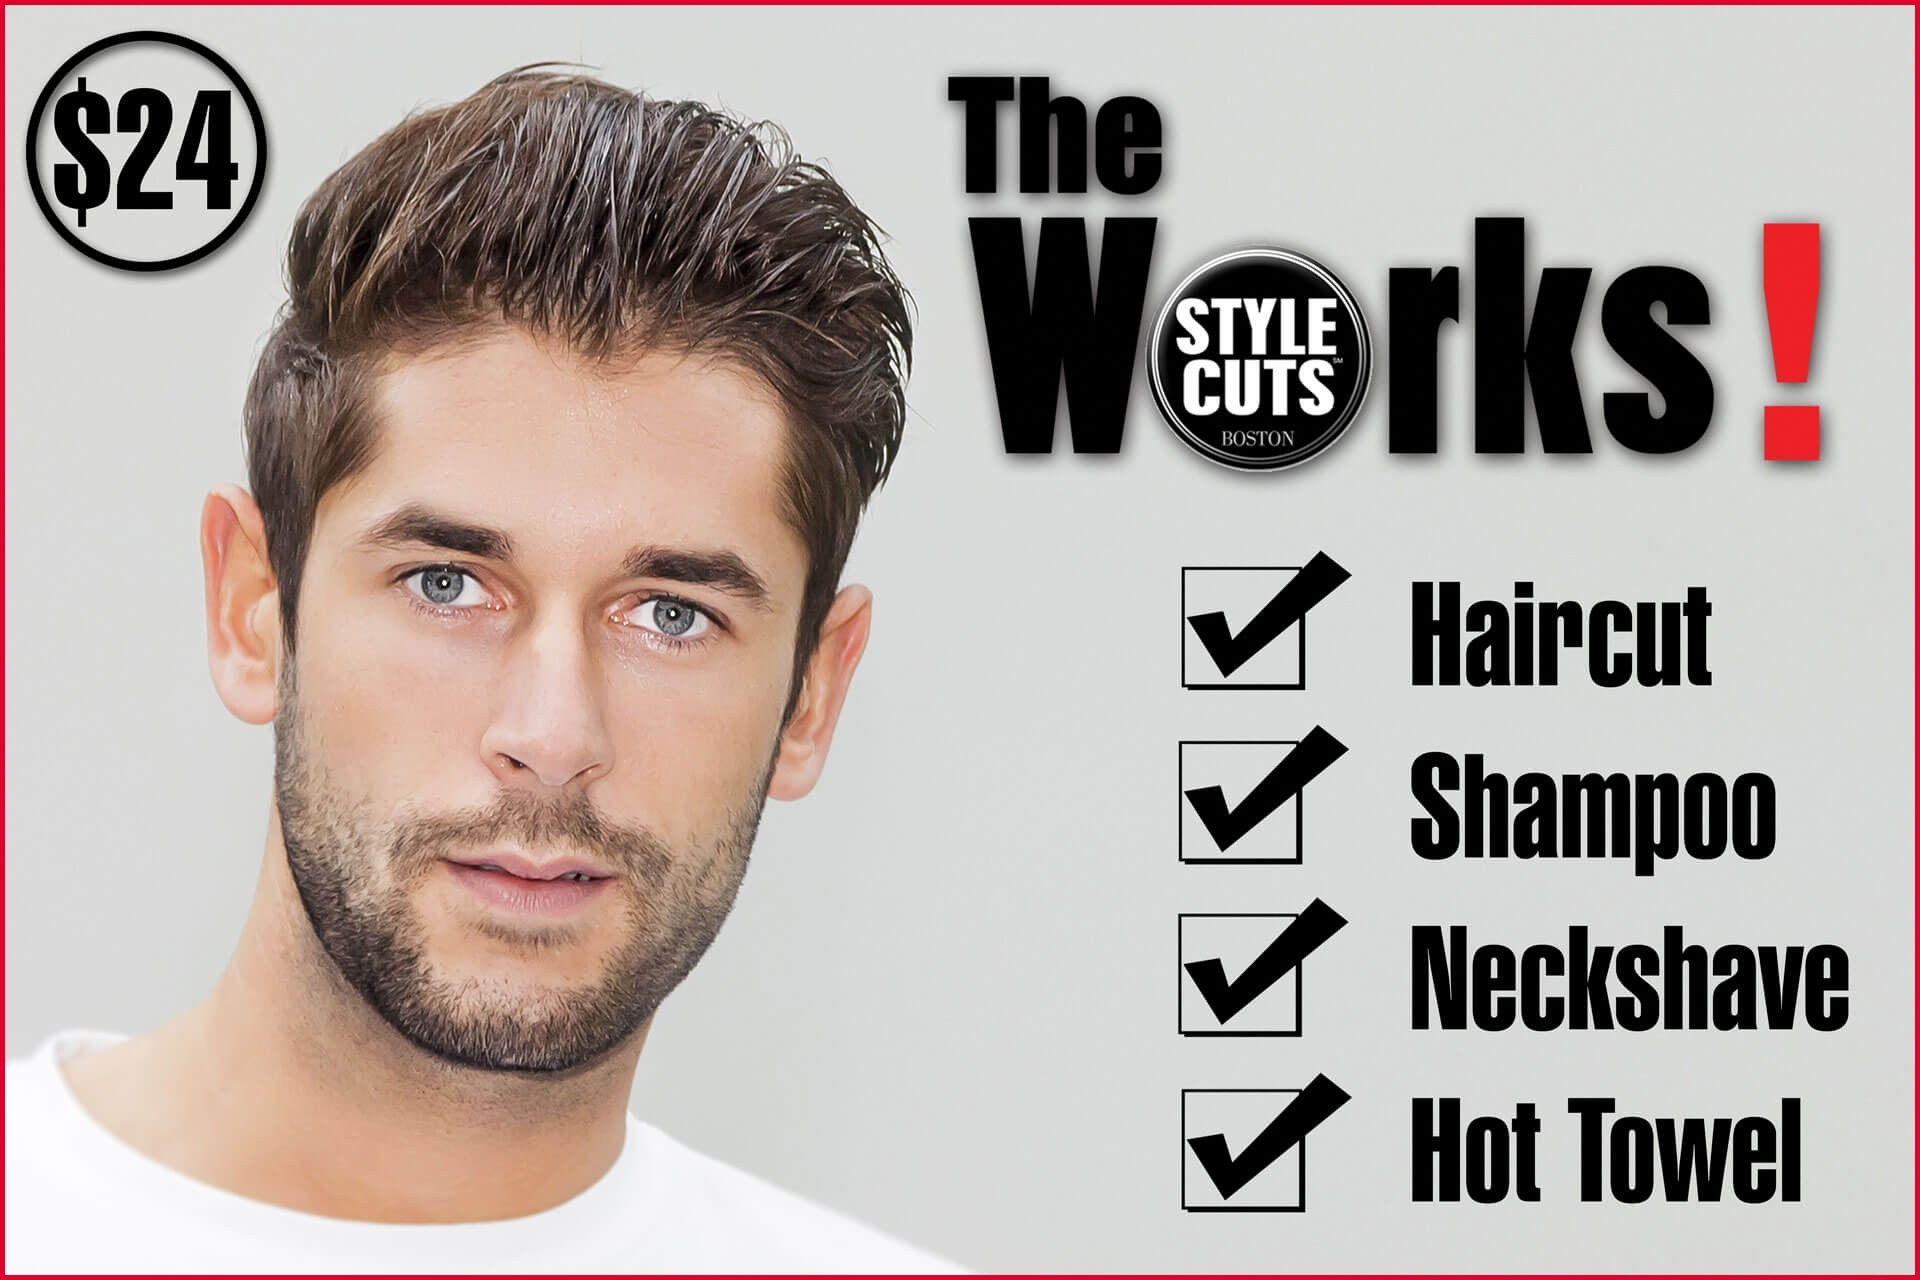 Walk In Haircut Near Me 215770 Stylecuts Haircuts Hair Salon Barber for Haircut Near Me Walk In